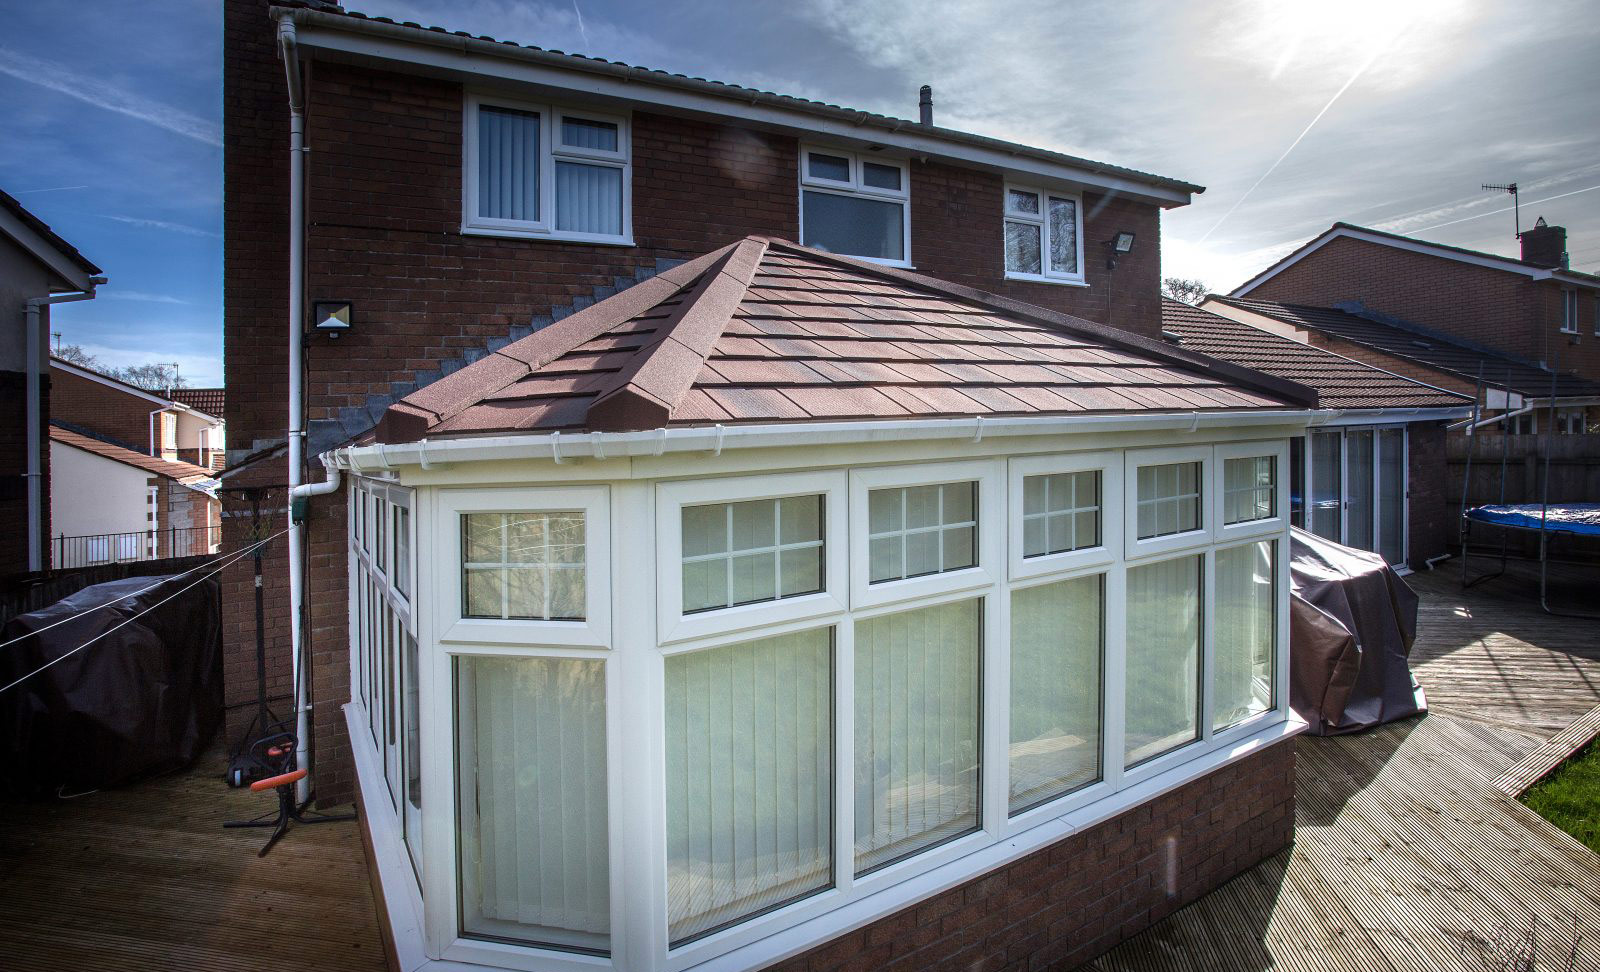 Conservatory Roof Conversion | Conservatory Roof Replacement